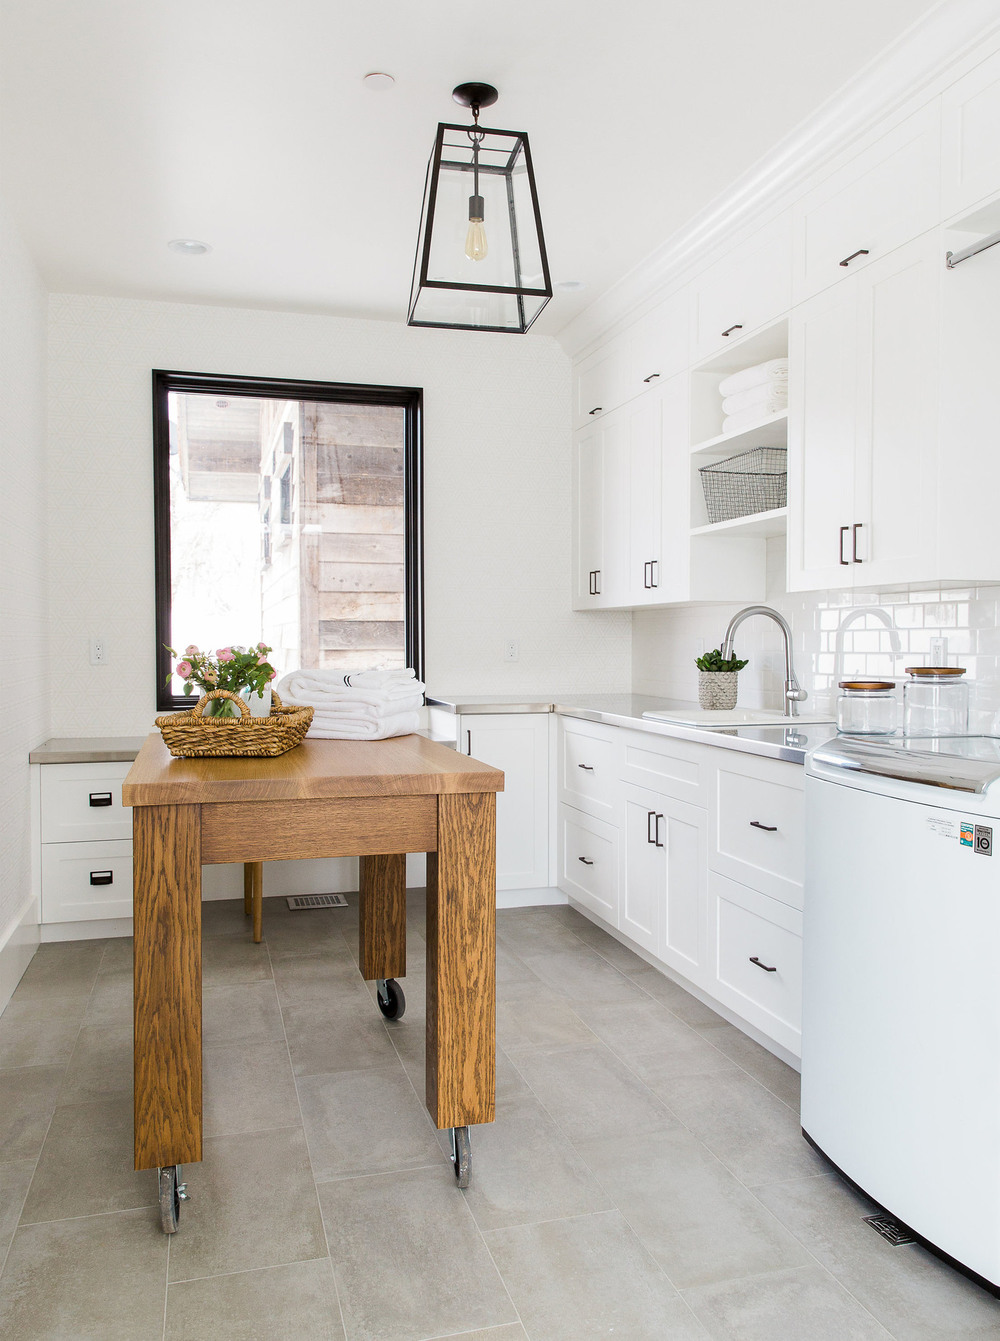 White modern kitchen with wooden cutting table